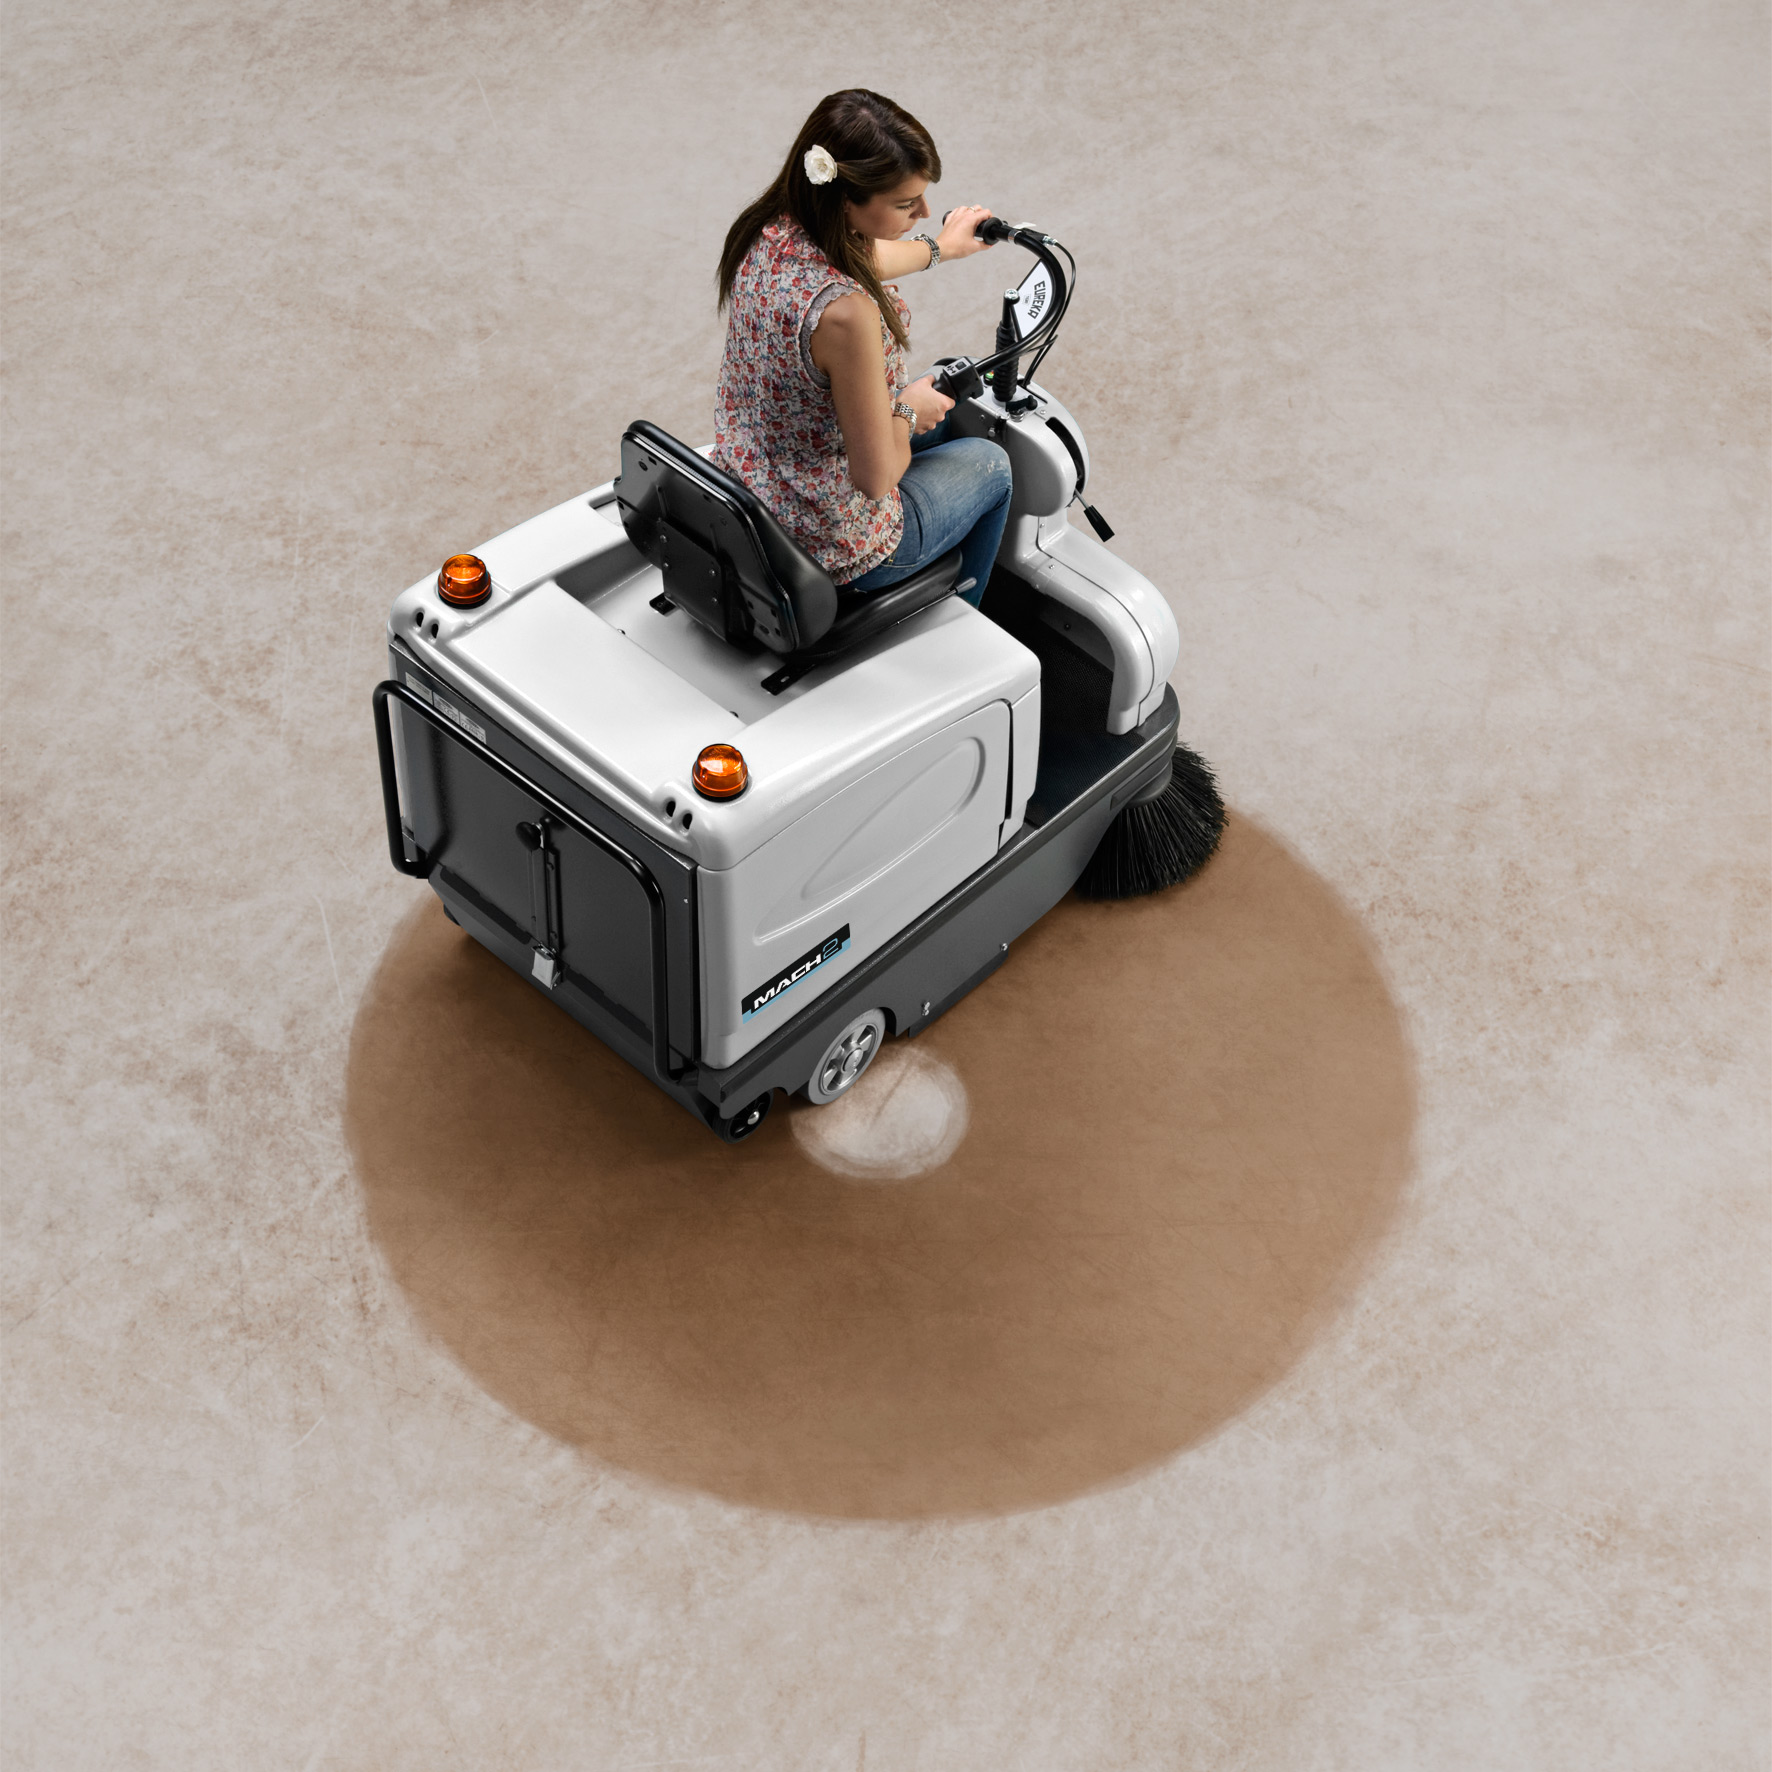 MACH 2 RIDE-ON SWEEPER AGILE AND MANAGEABLE